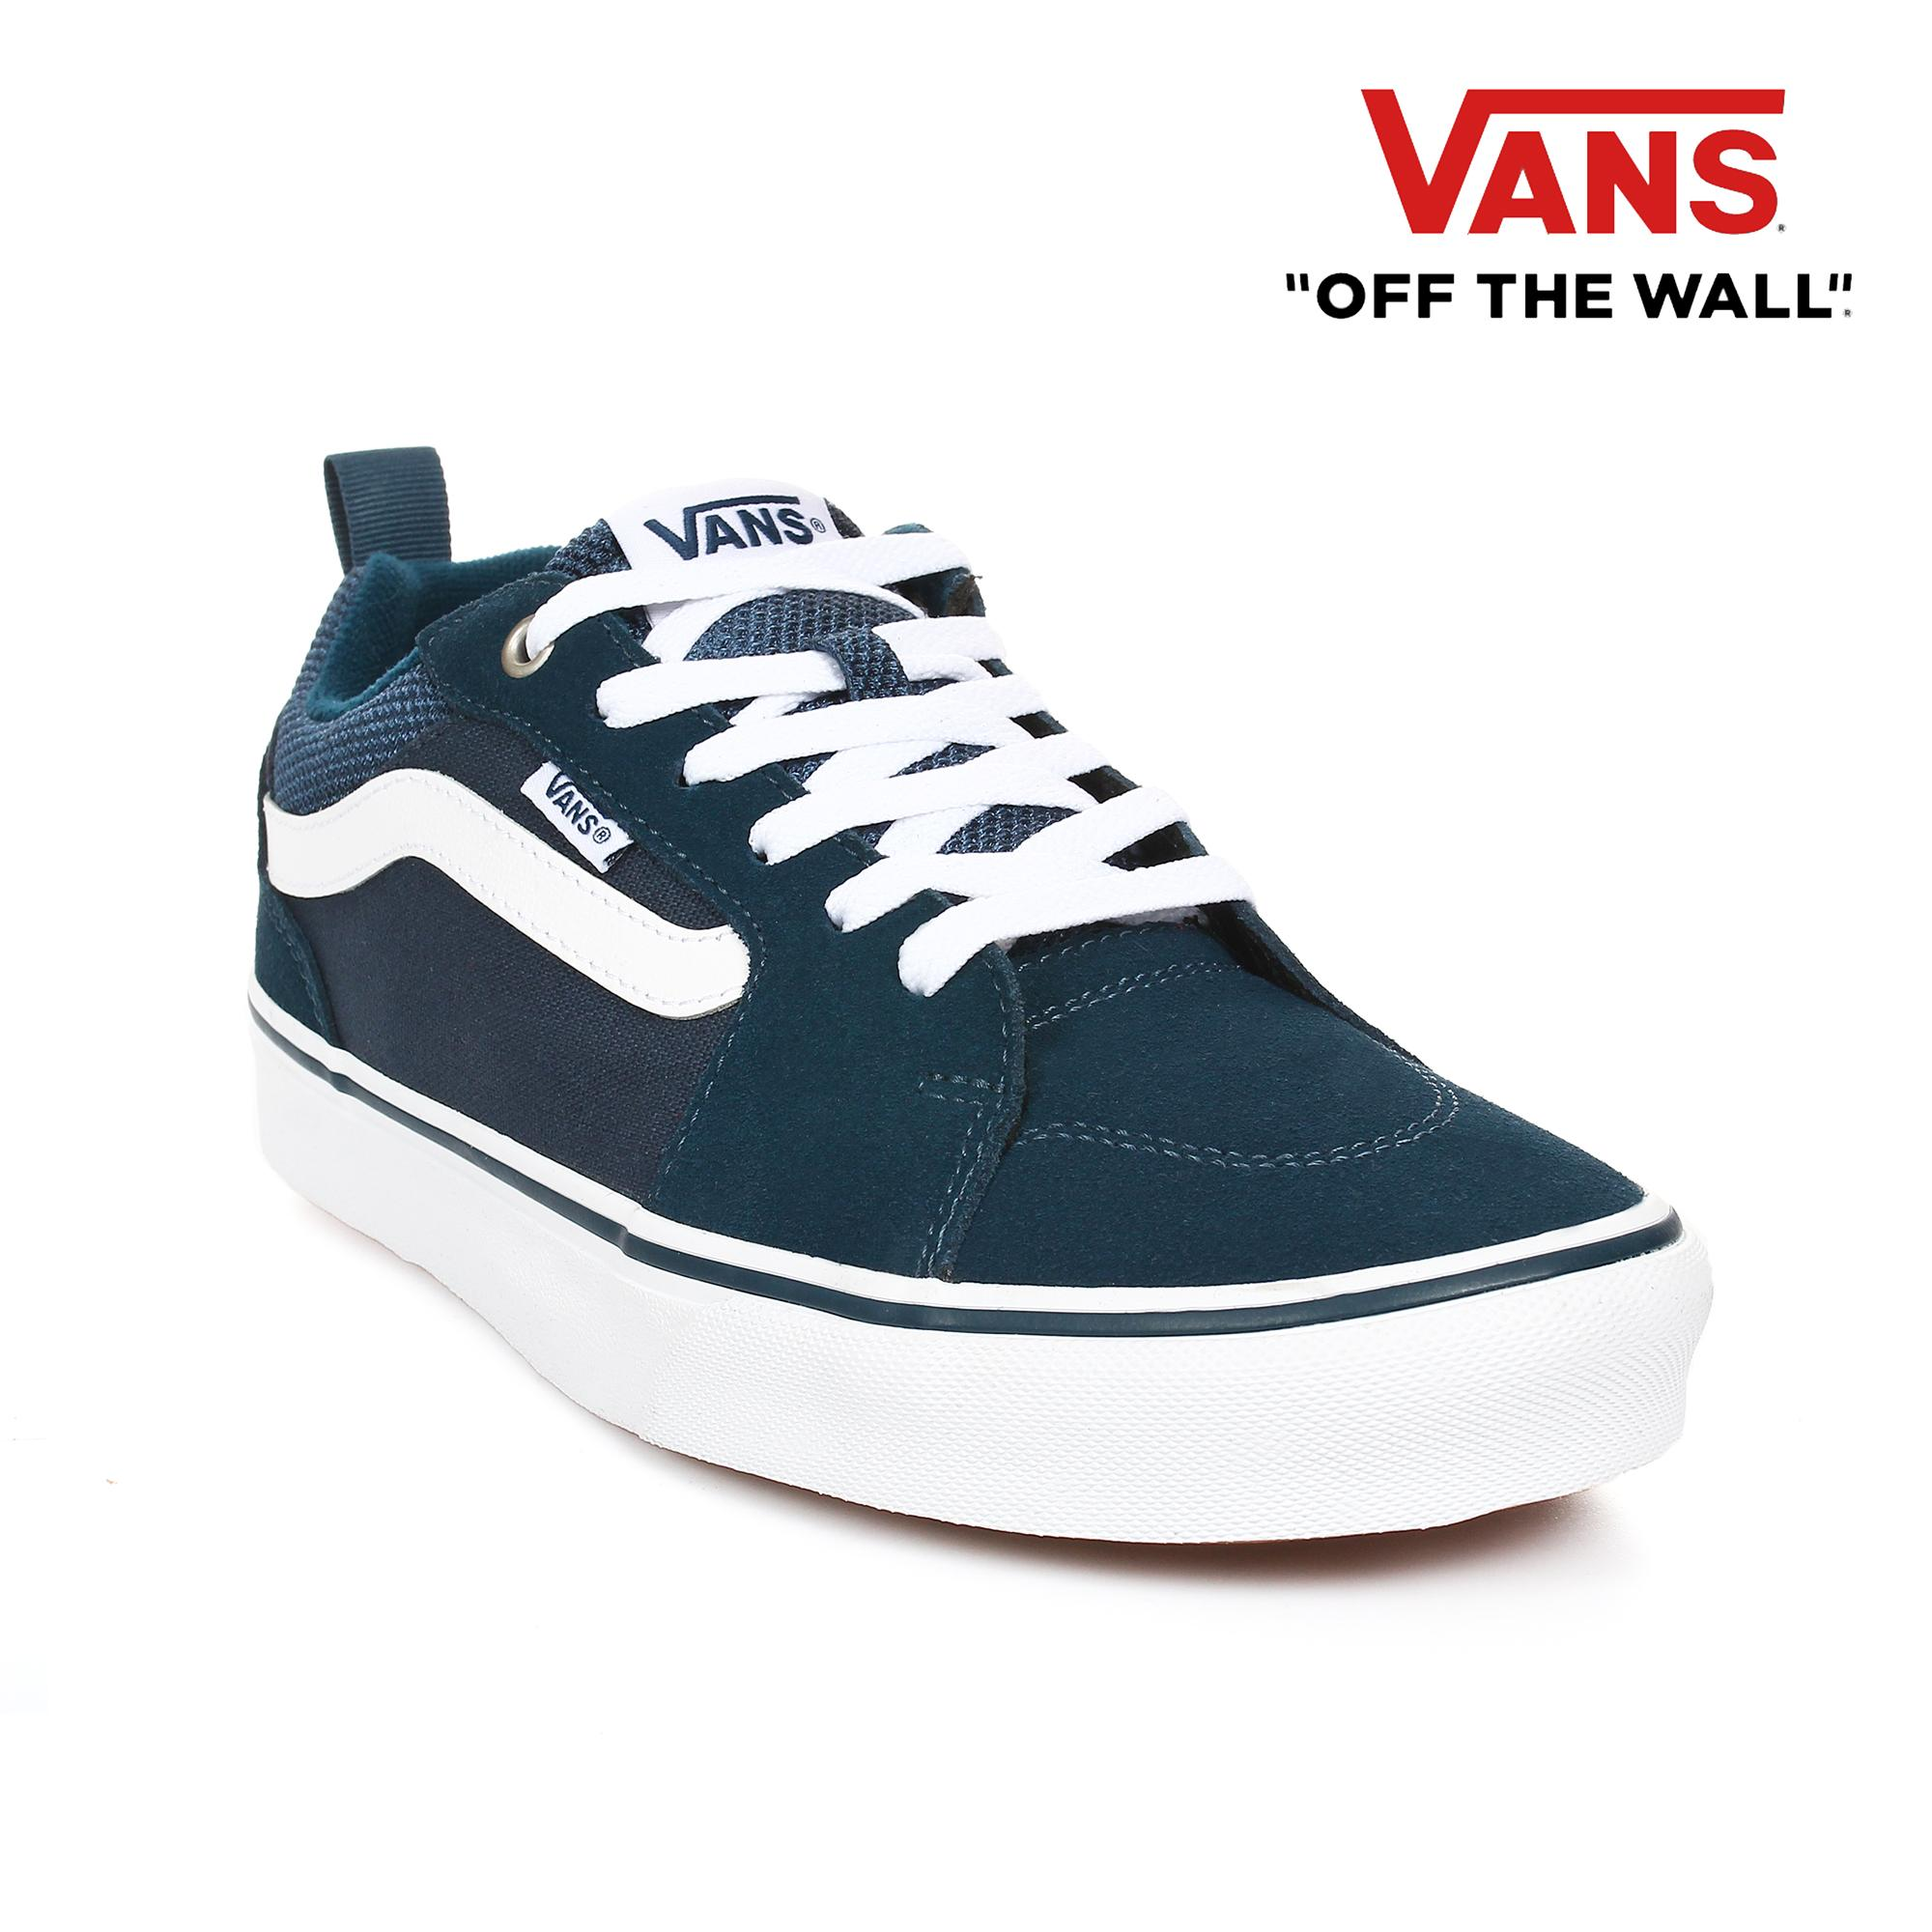 2350abe700 Vans Shoes for Men Philippines - Vans Men s Shoes for sale - prices ...